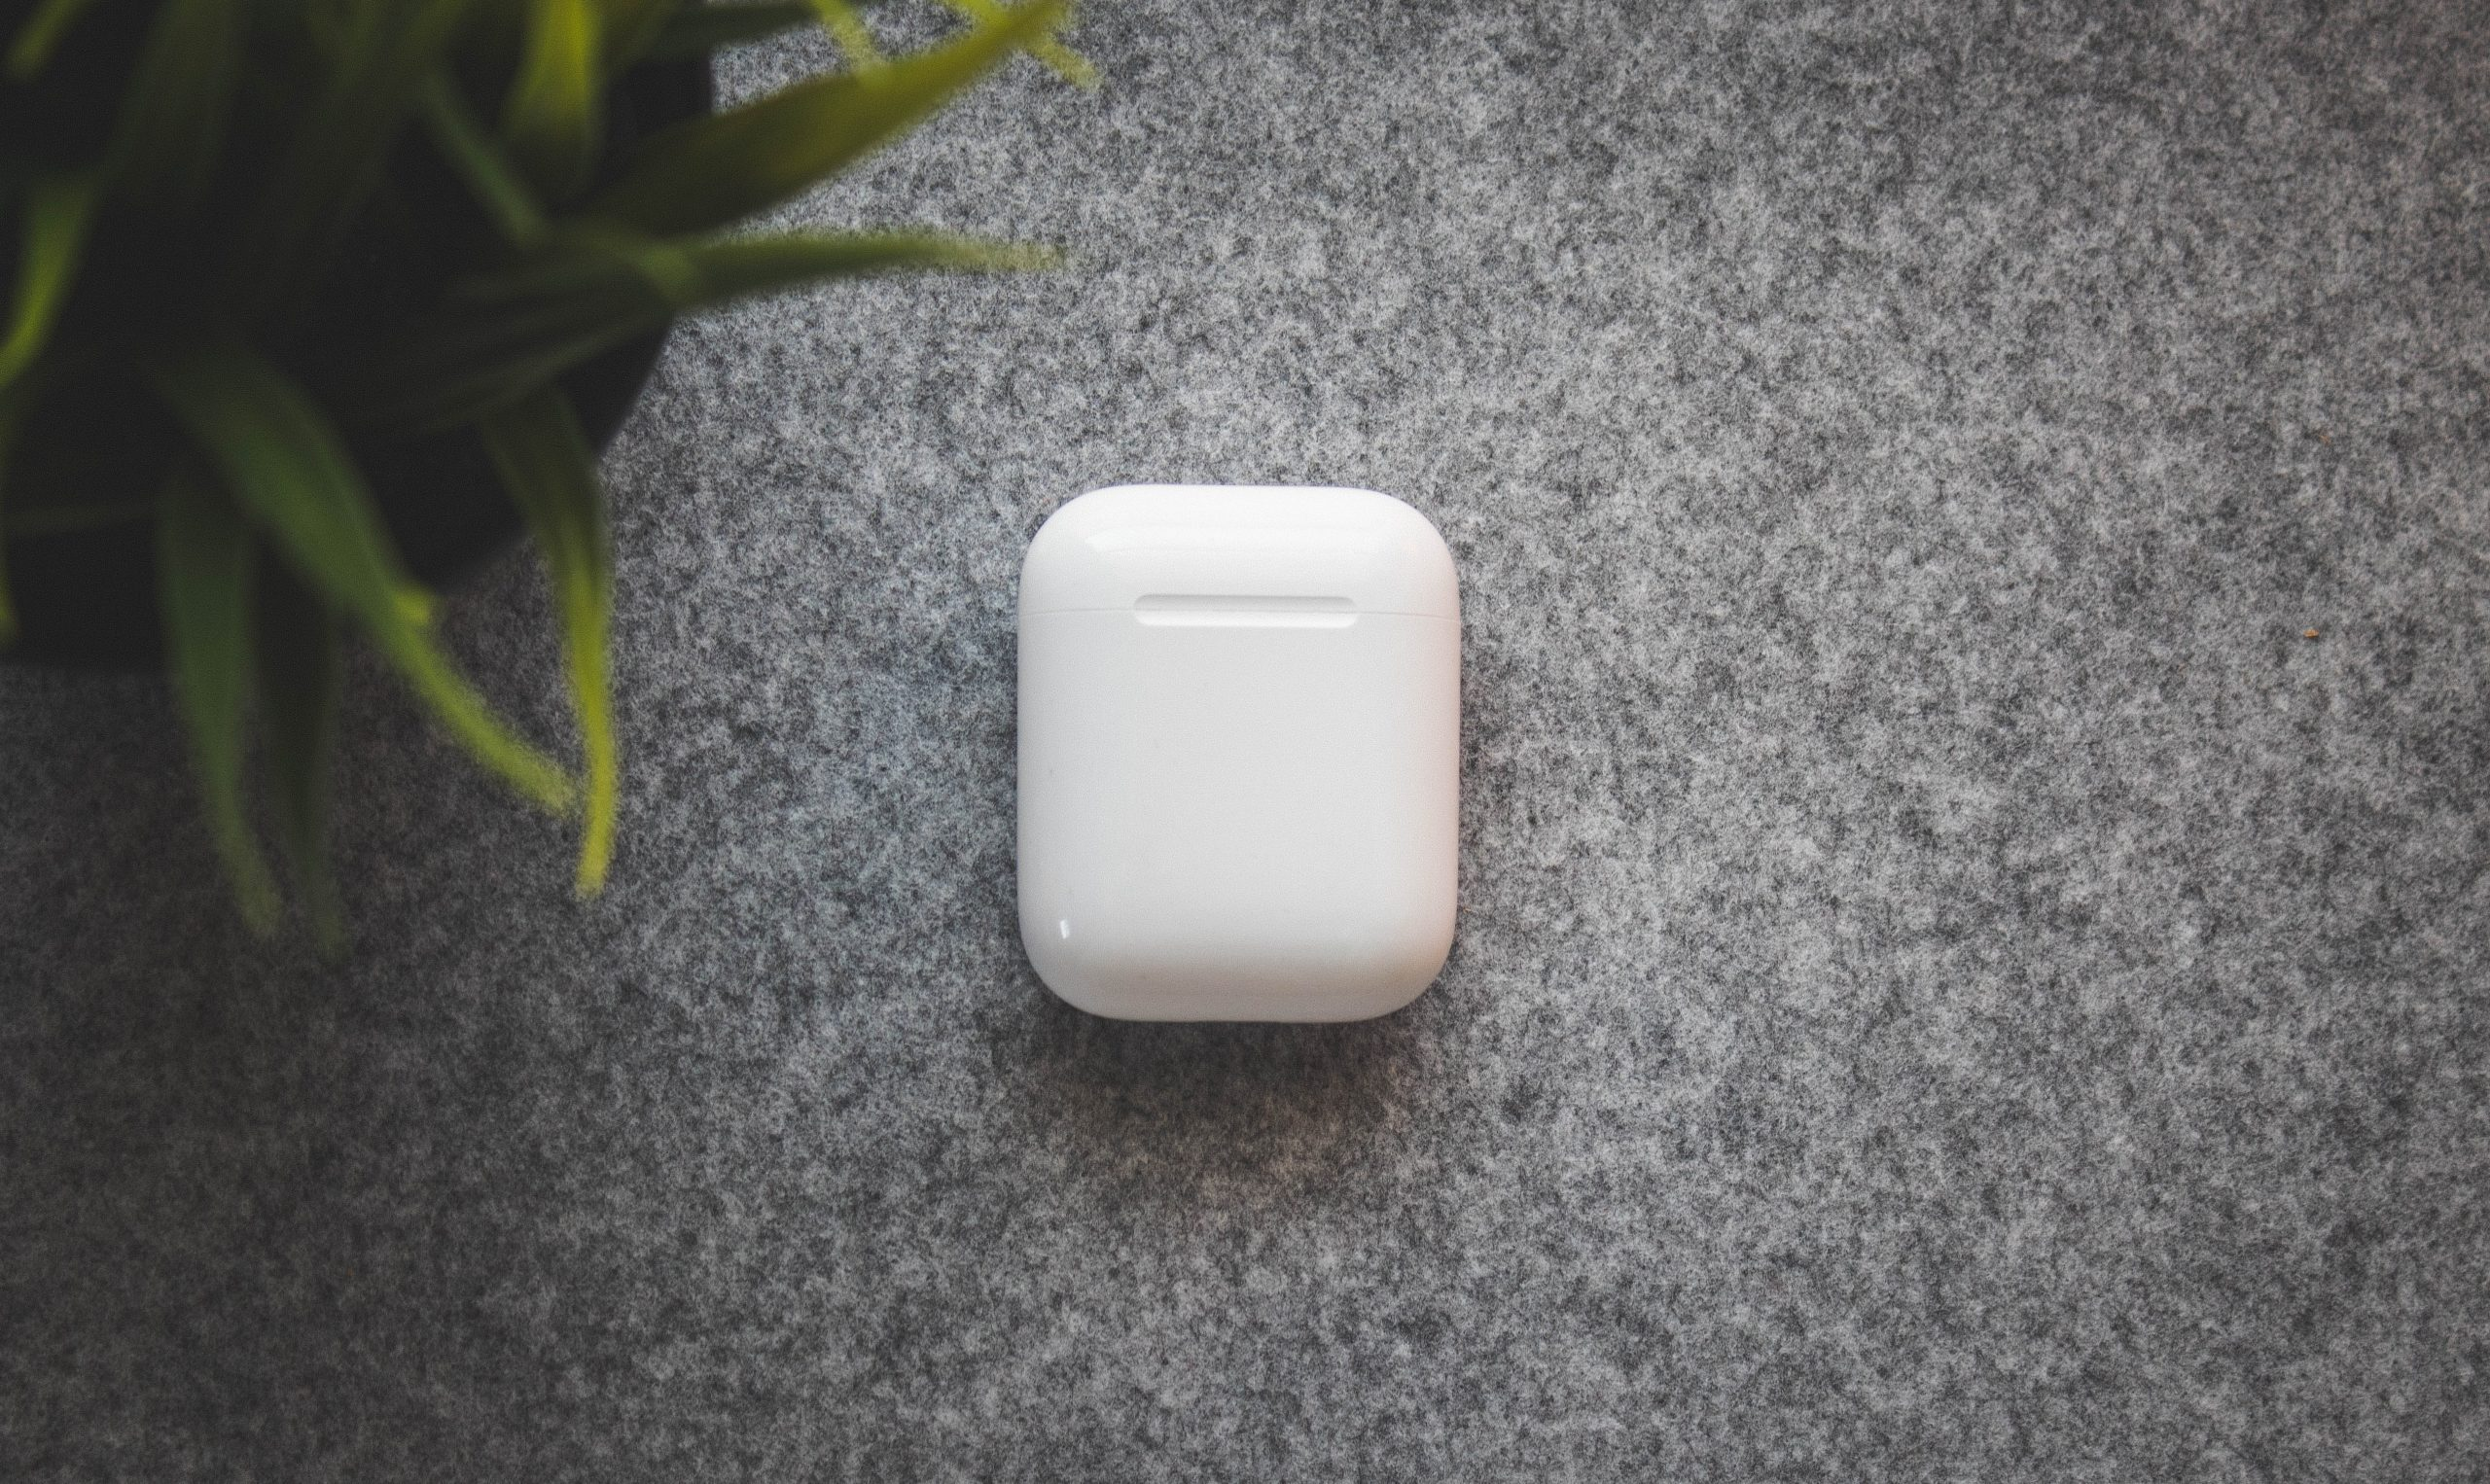 airpods won't reset